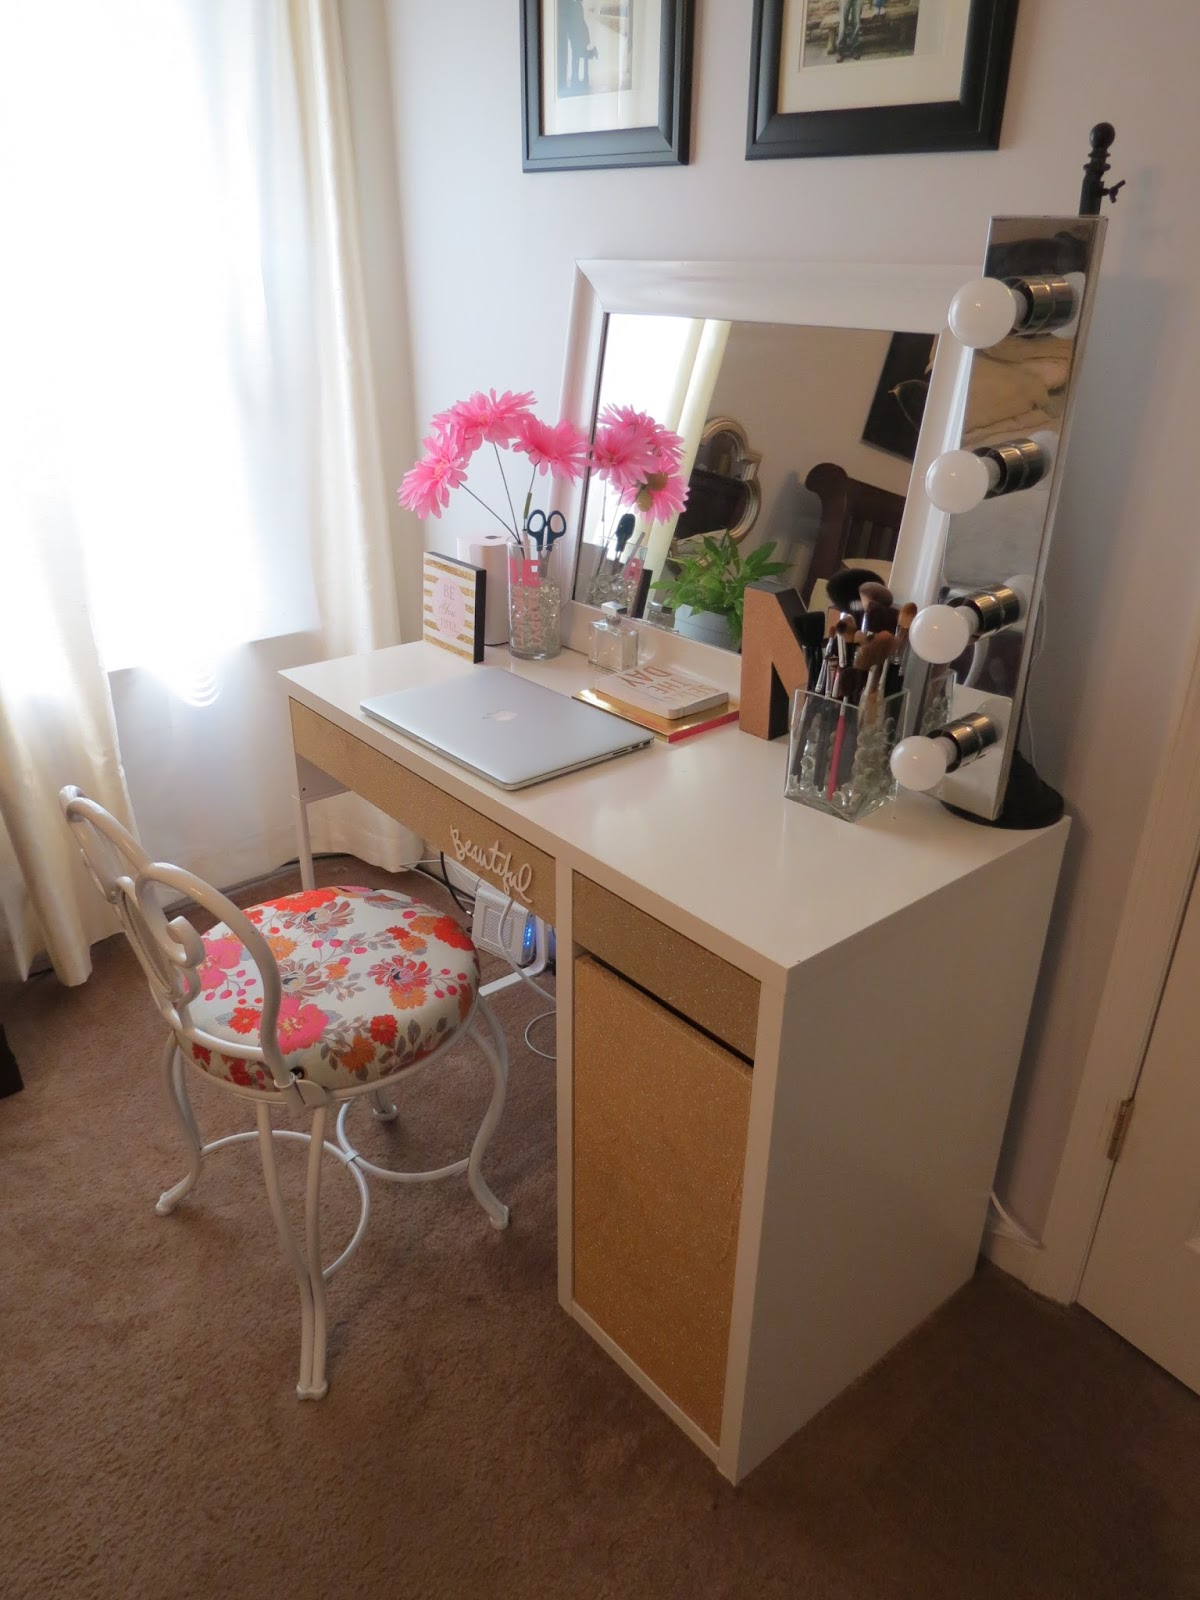 My 20 ikea desk makeup vanity diy projects by nina my 20 ikea desk makeup vanity solutioingenieria Image collections